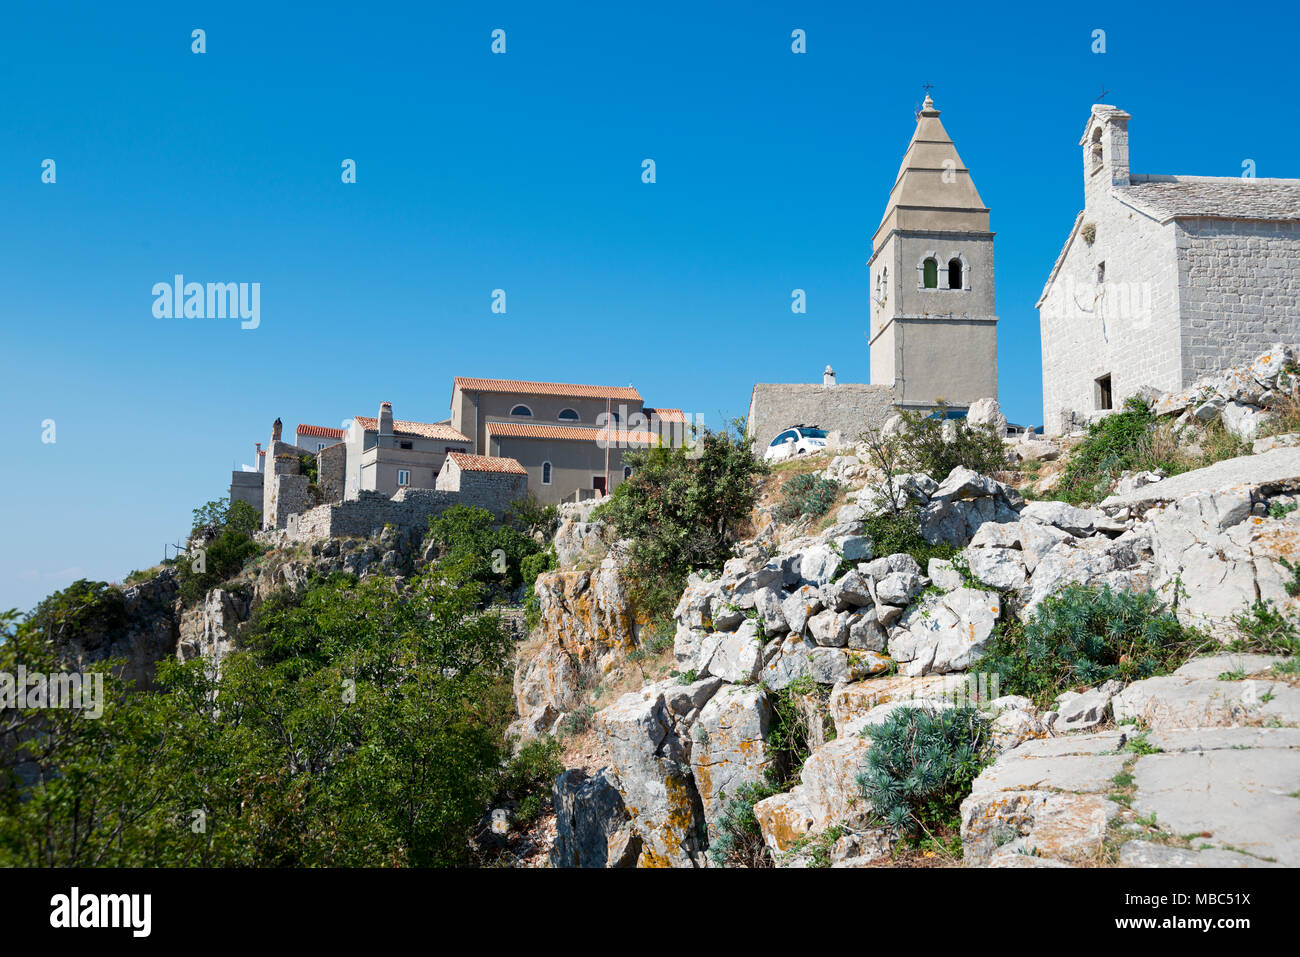 Parish Church of the Blessed Virgin Mary, Lubenice, Cres Island, Kvarner Gulf Bay, Croatia - Stock Image